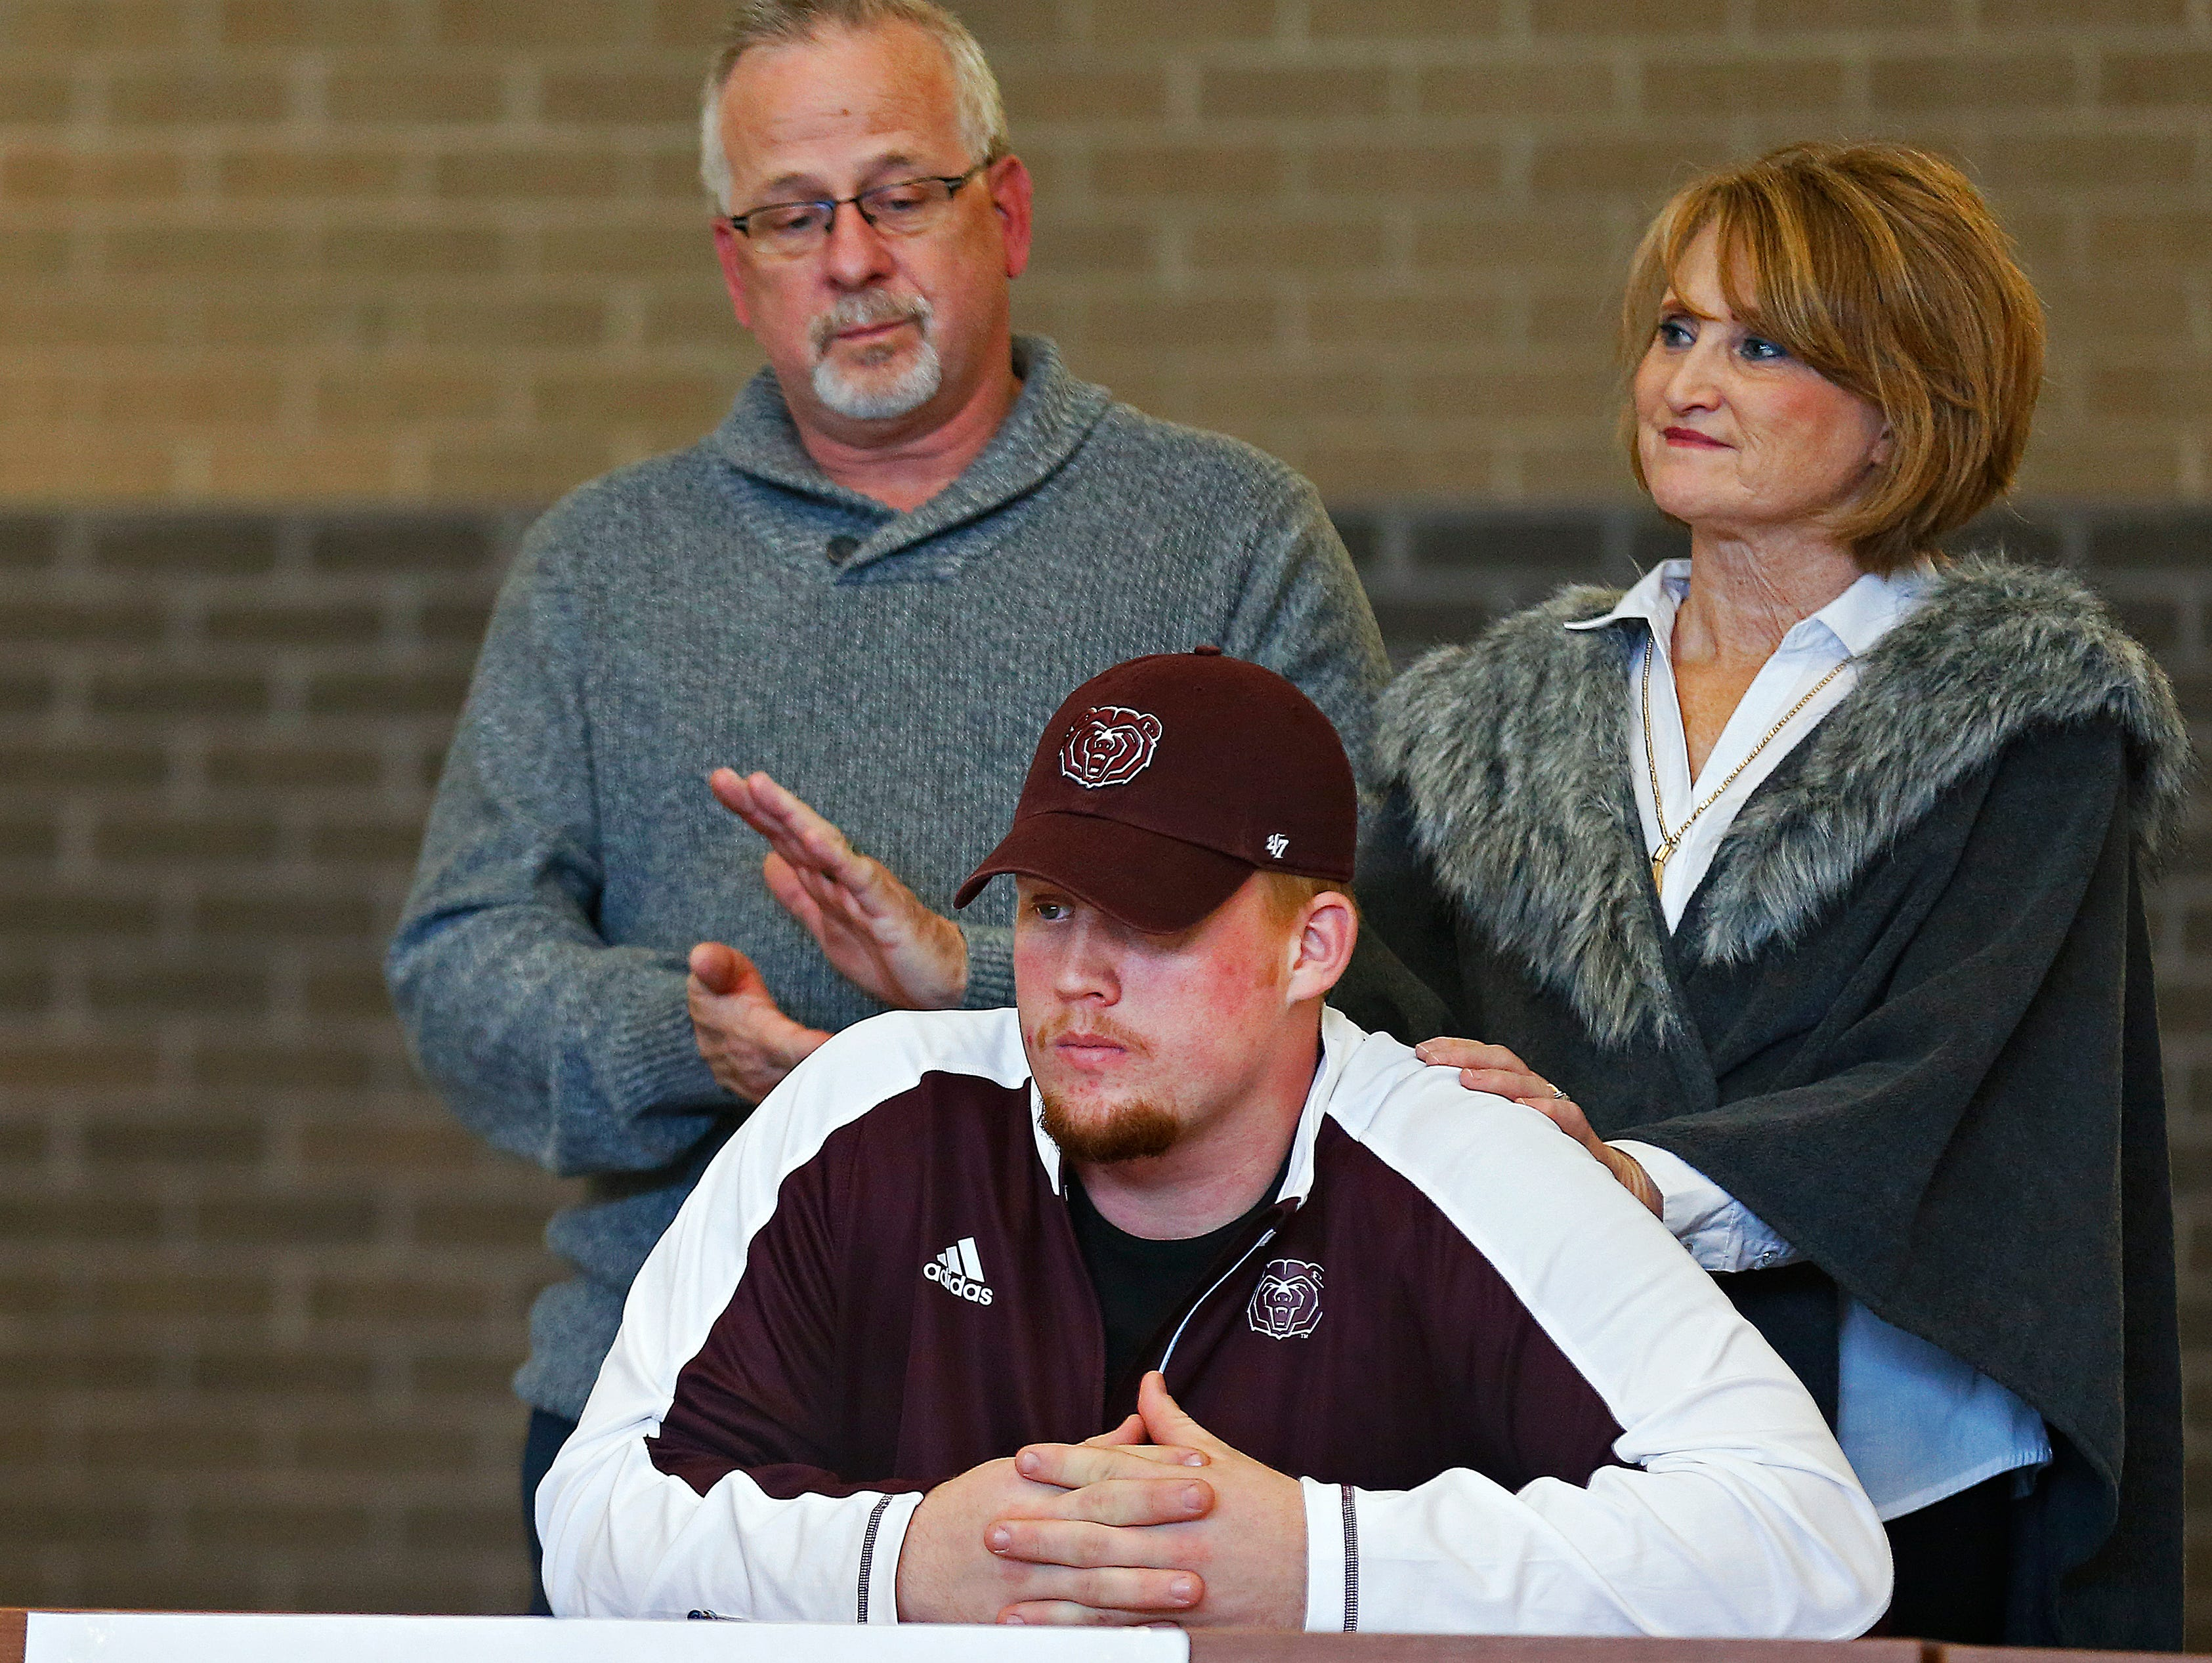 Grant Martin and his family take part in a National Signing Day ceremony held at Kickapoo High School in Springfield, Mo. on Feb. 1, 2017.